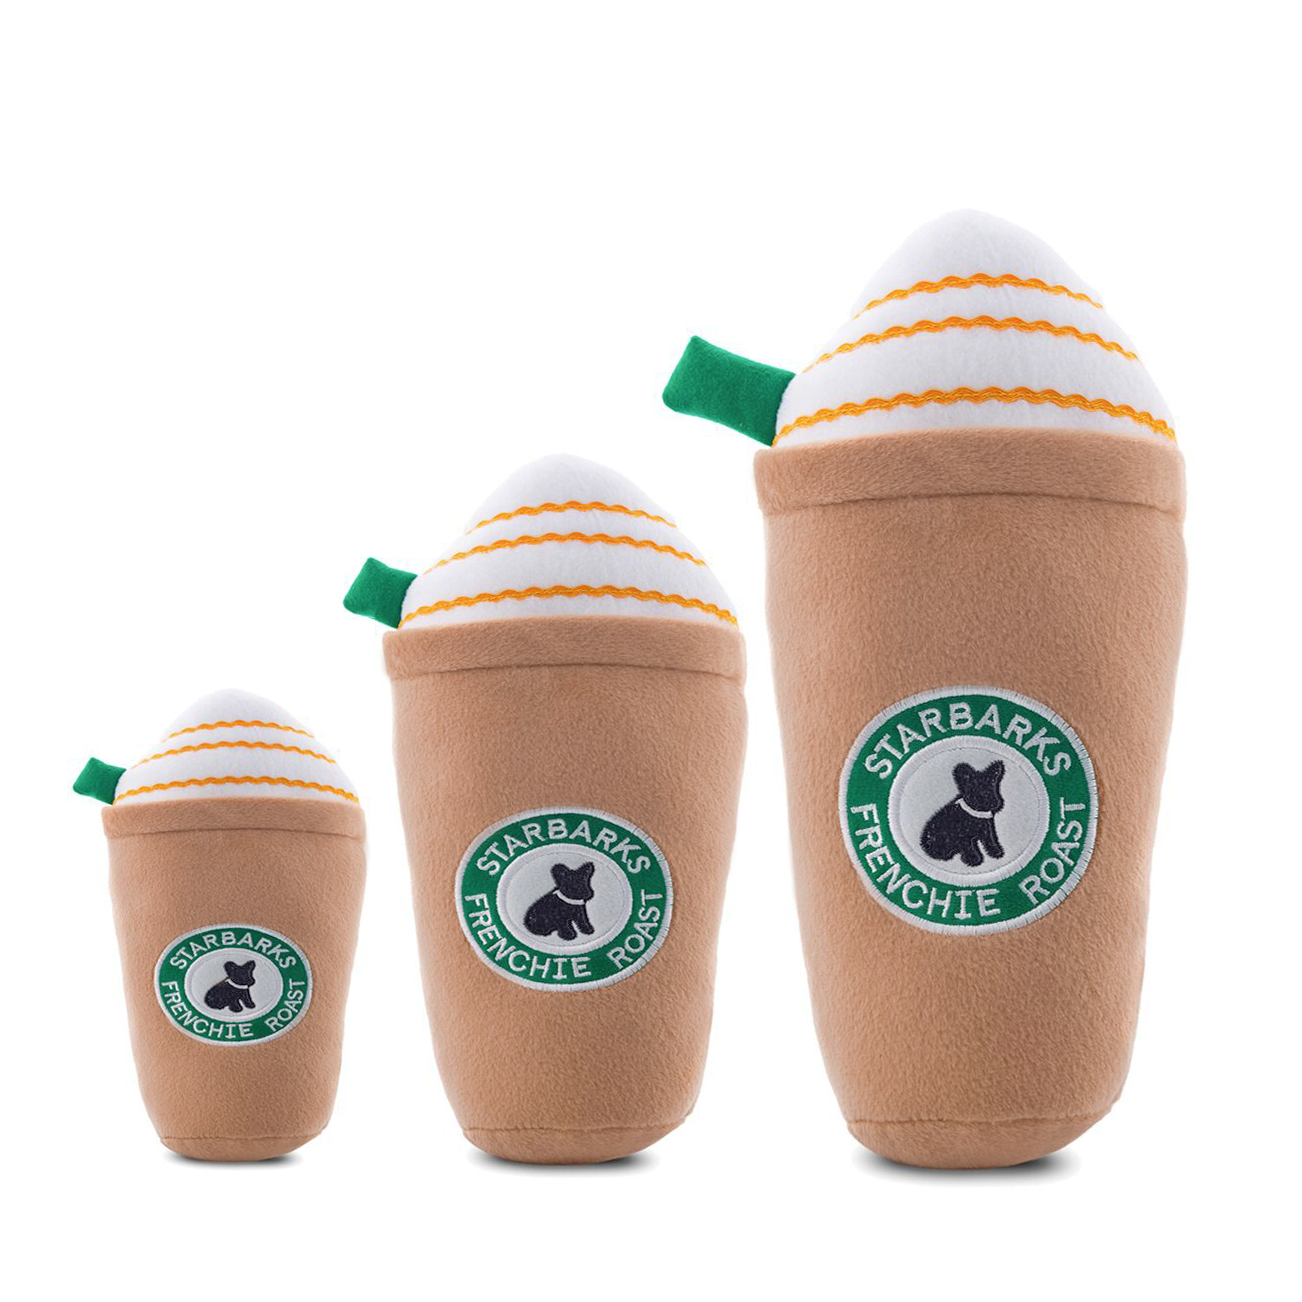 Starbarks Caramel Frappuccino Dog Toy